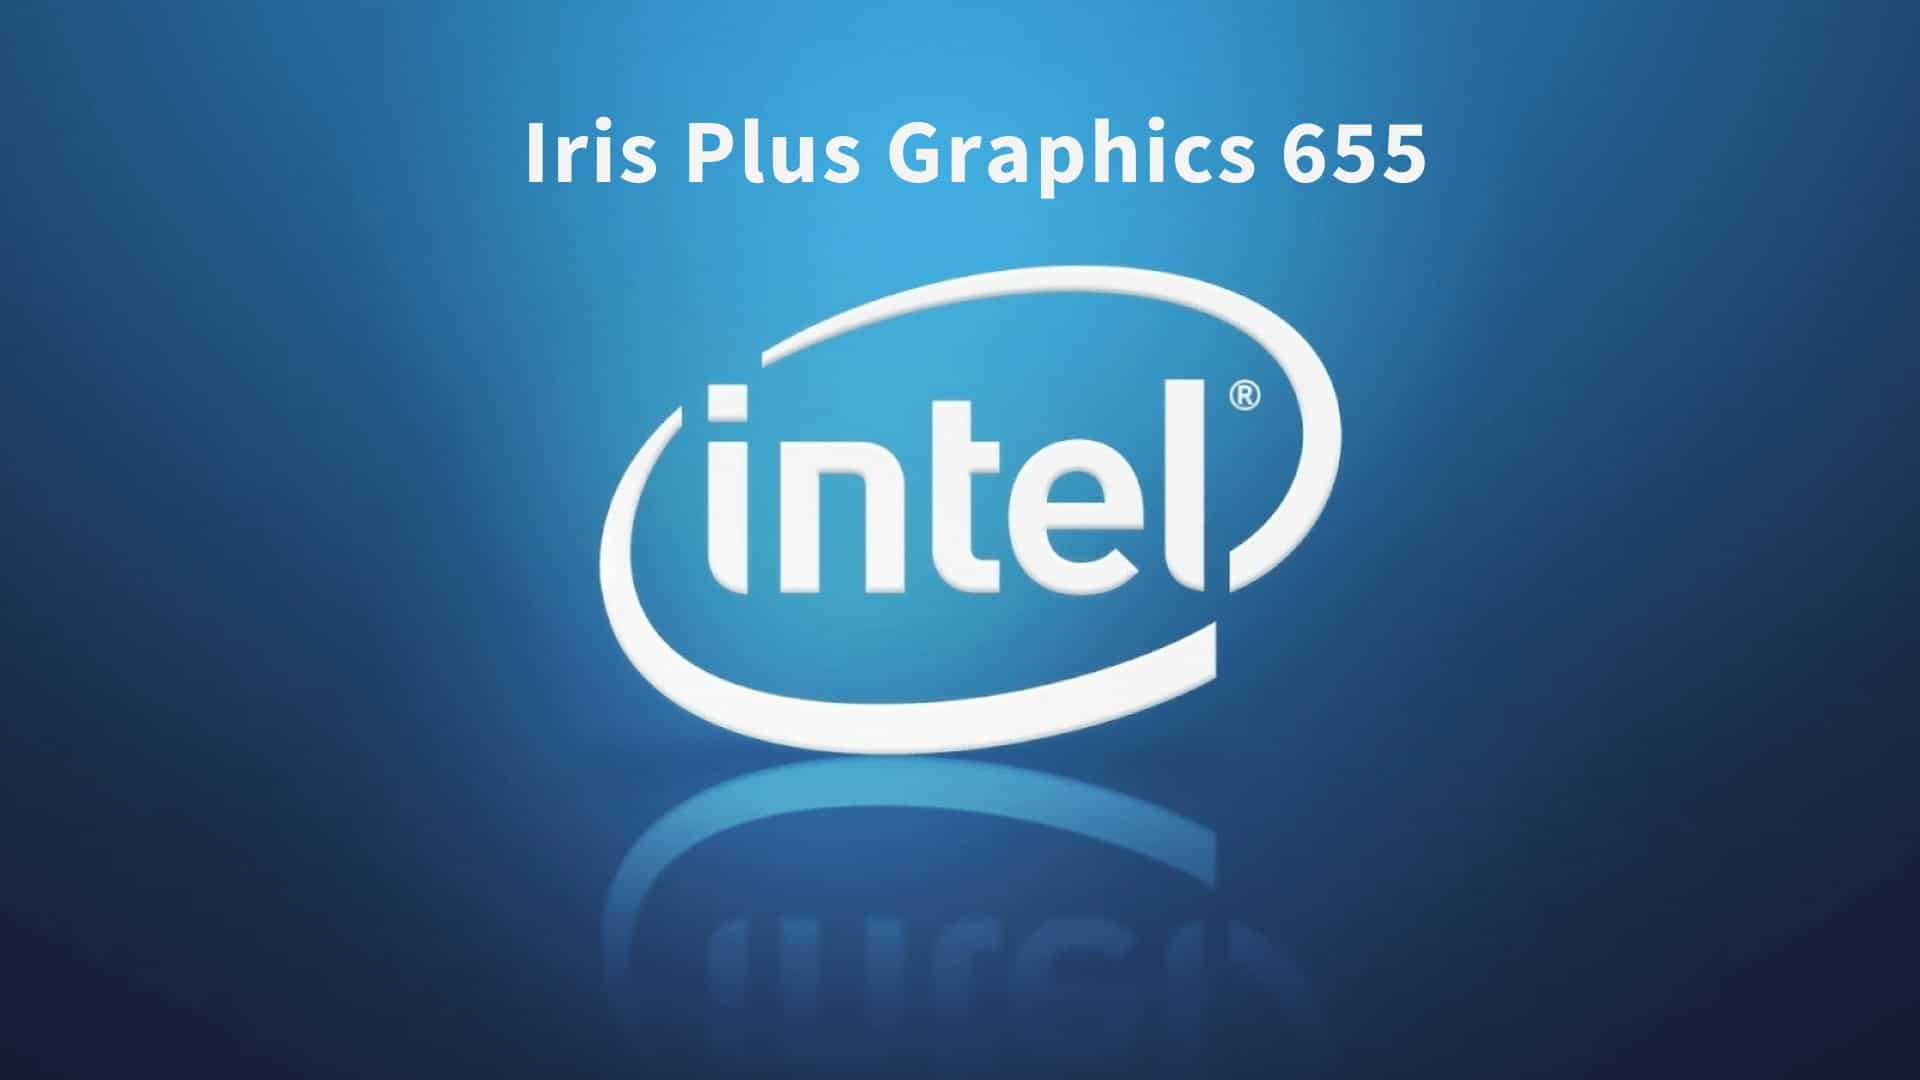 Intel Iris Plus Graphics 655